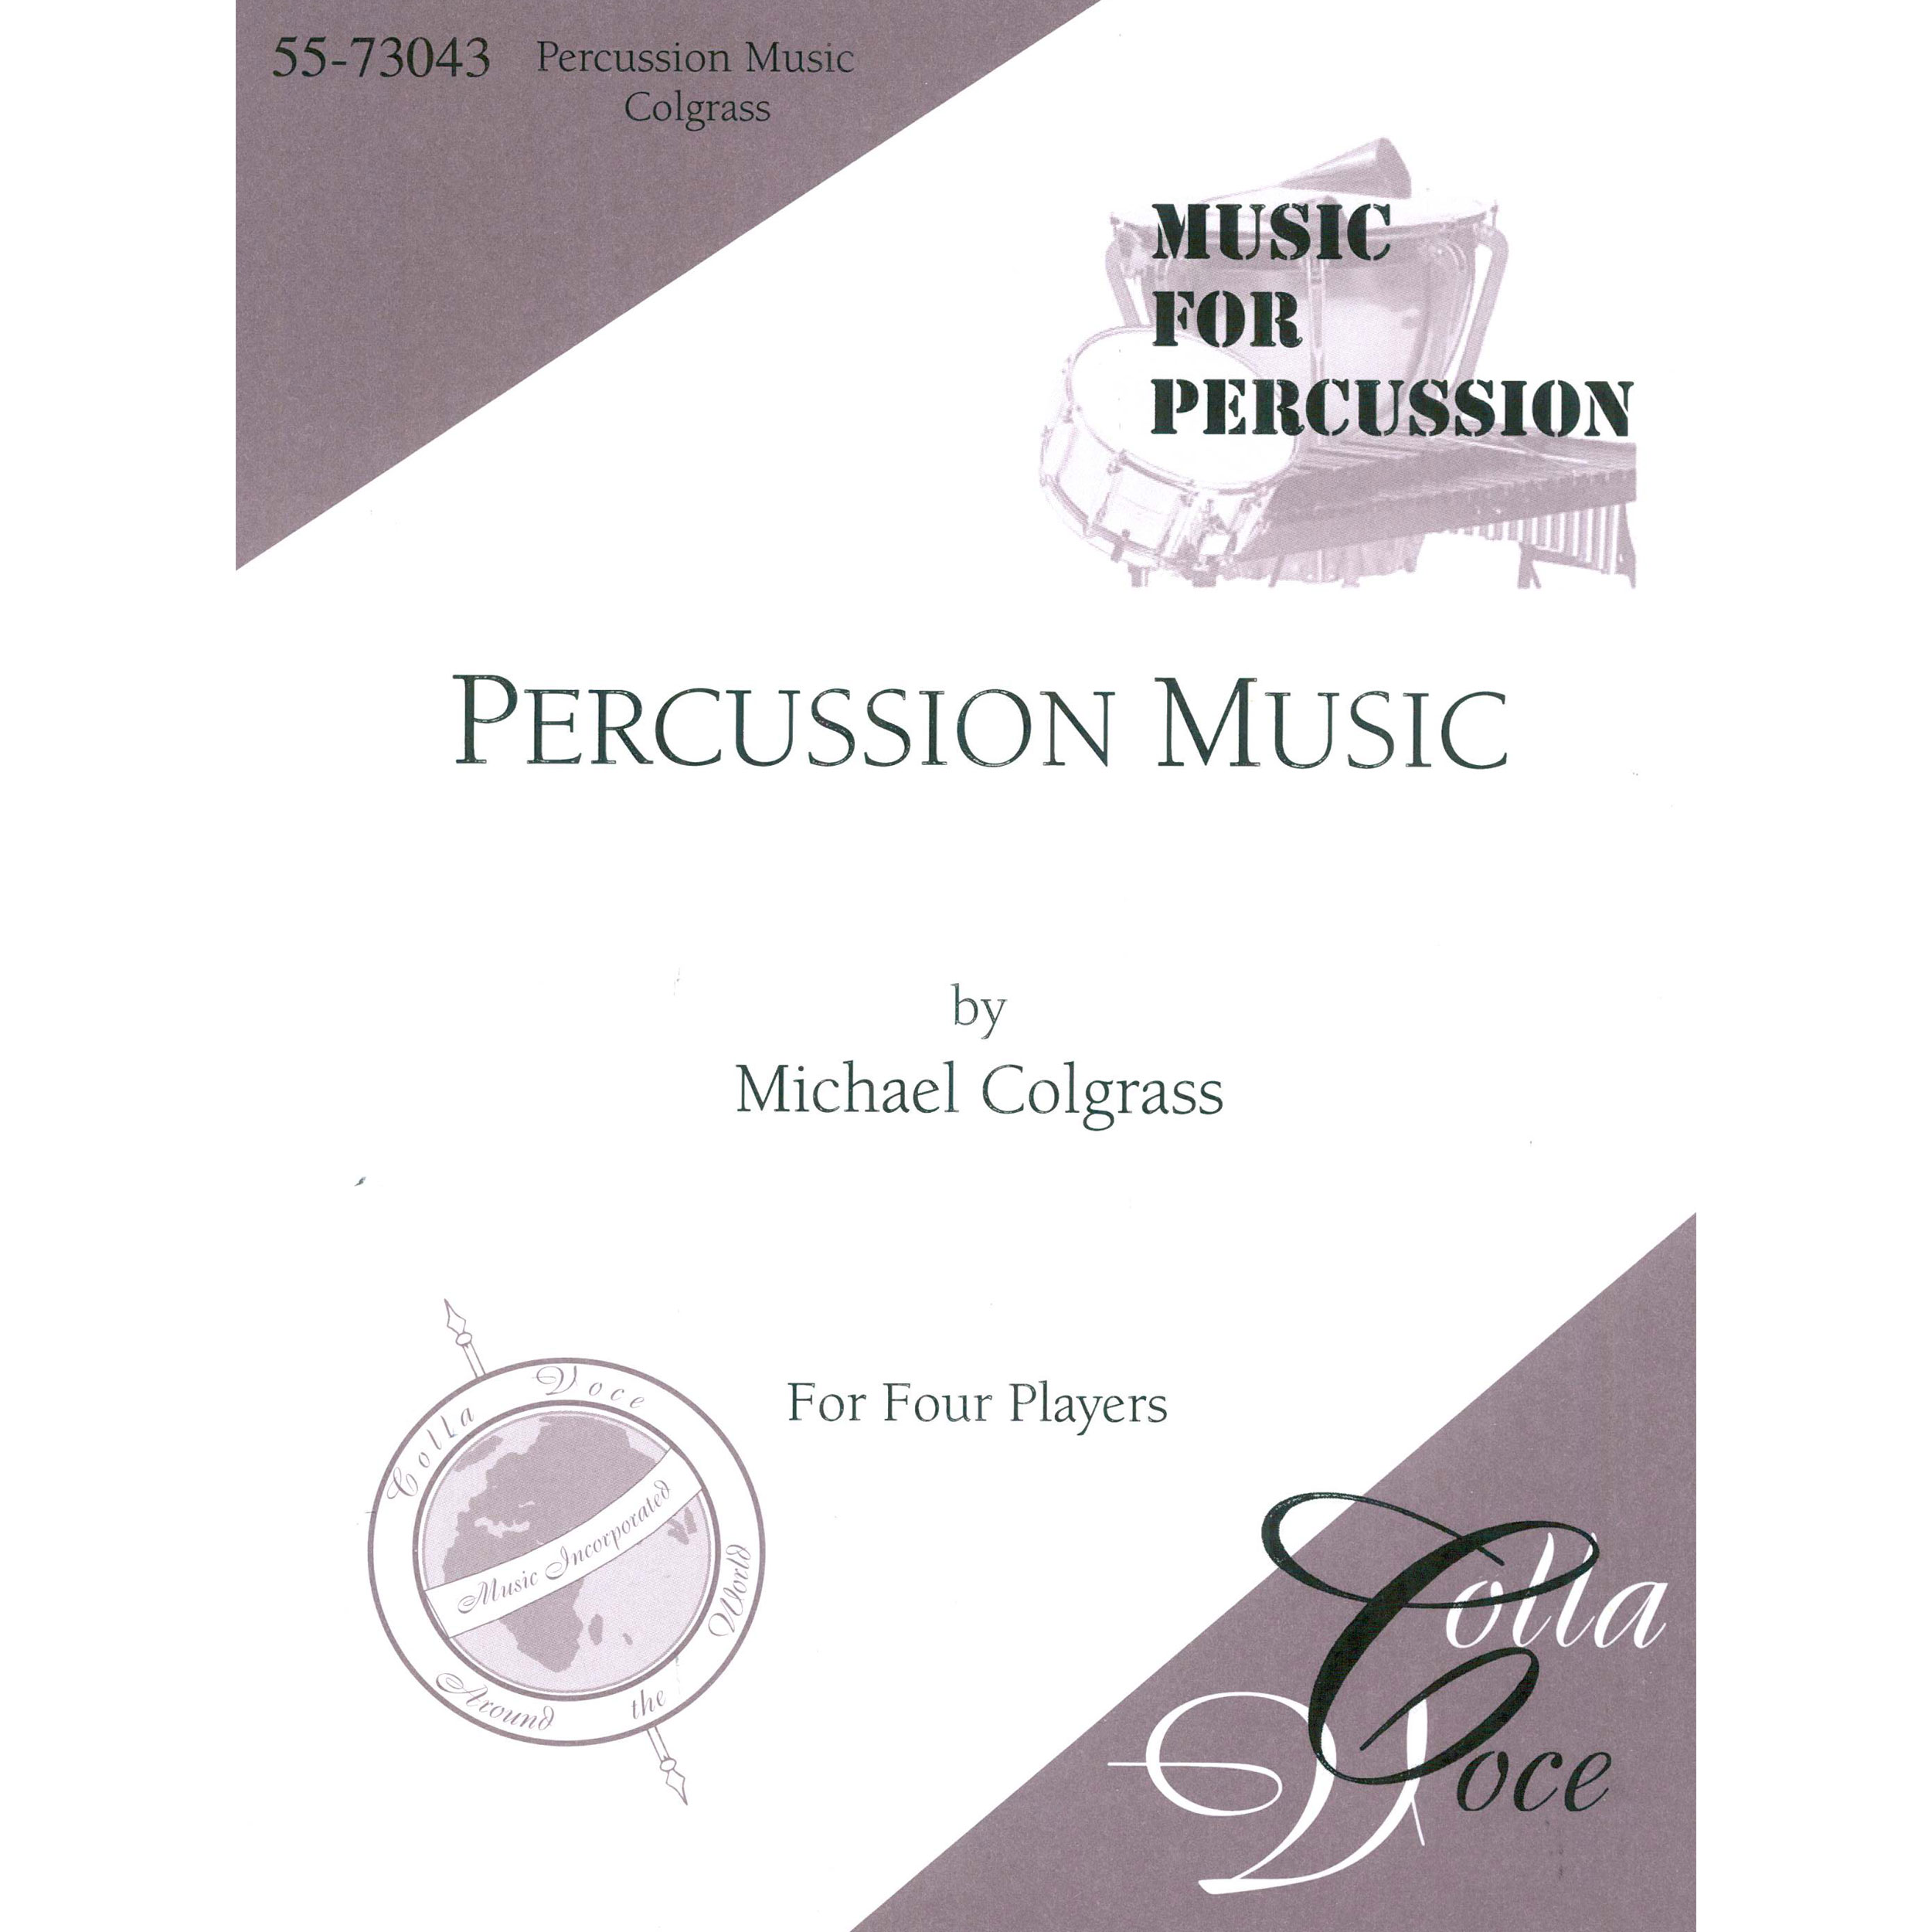 Percussion Music by Michael Colgrass